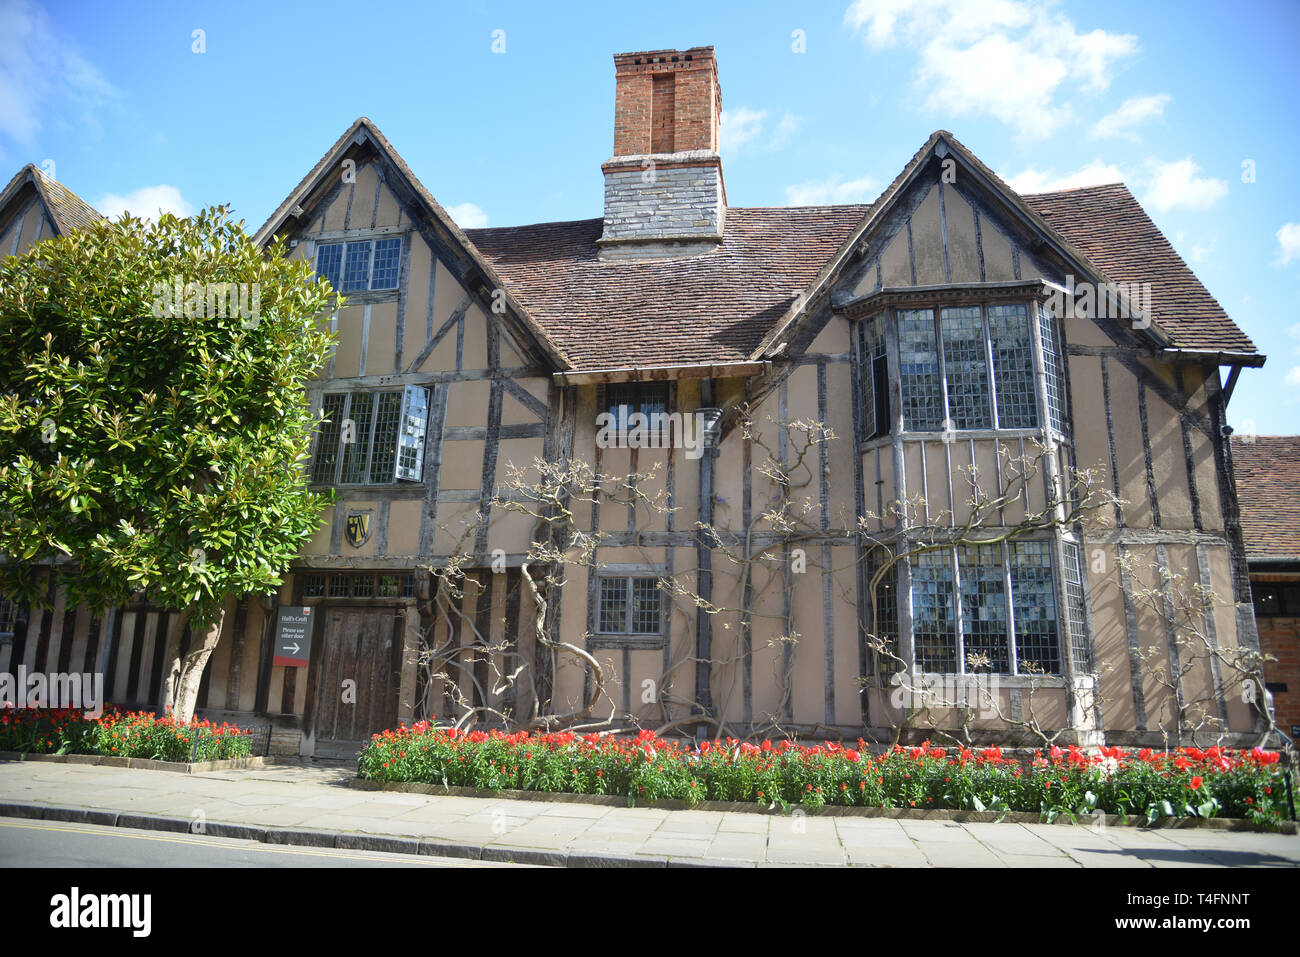 Halls Croft, Old Town, Stratford upon Avon, Warwickshire, the home of John Hall and his wife Susanna, daughter of William Shakespeare Stock Photo